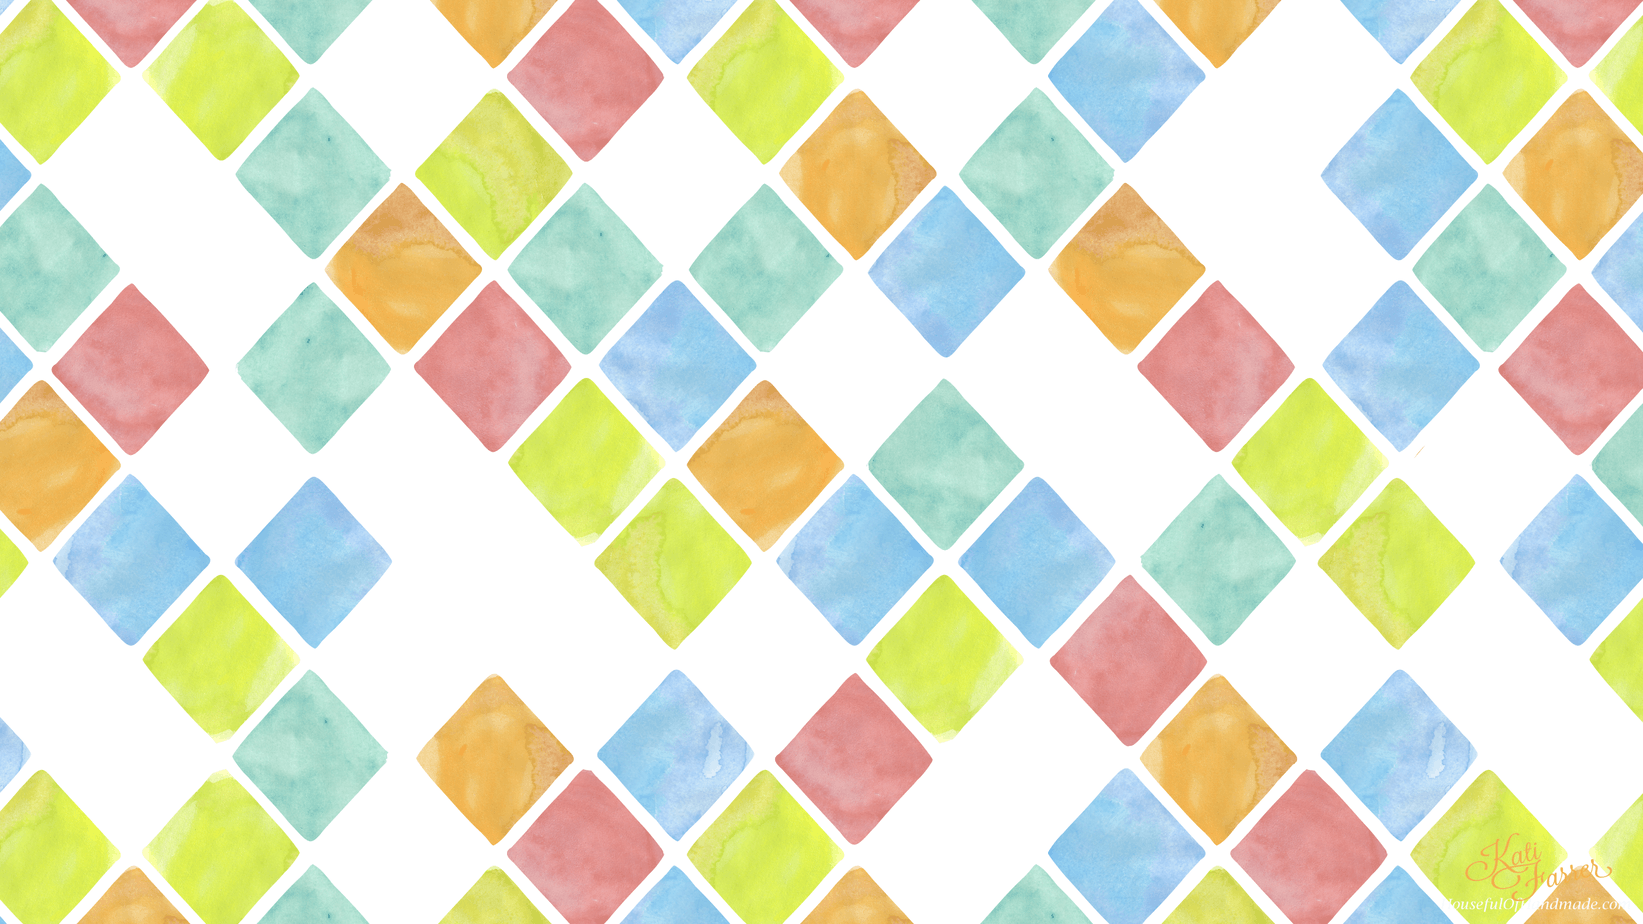 Calendar Background Images : Free digital backgrounds for may a houseful of handmade